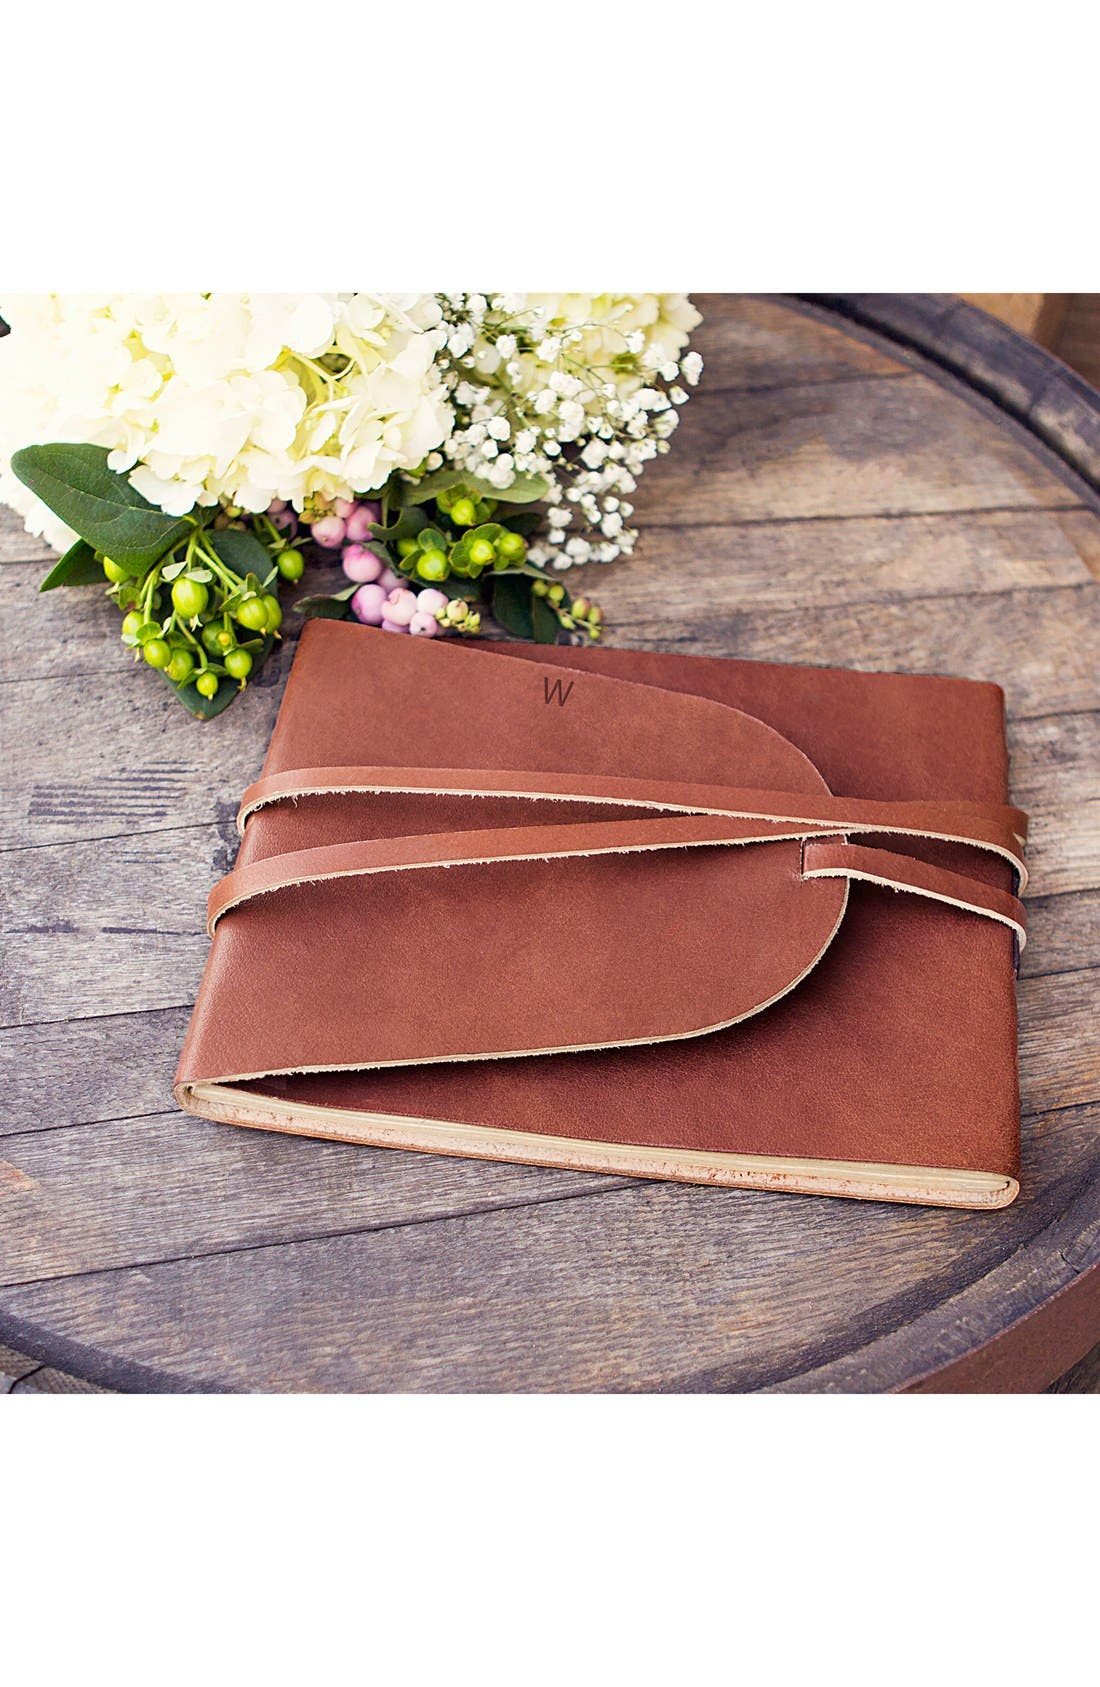 Alternate Image 1 Selected - Cathy's Concepts Monogram Leather Guest Book